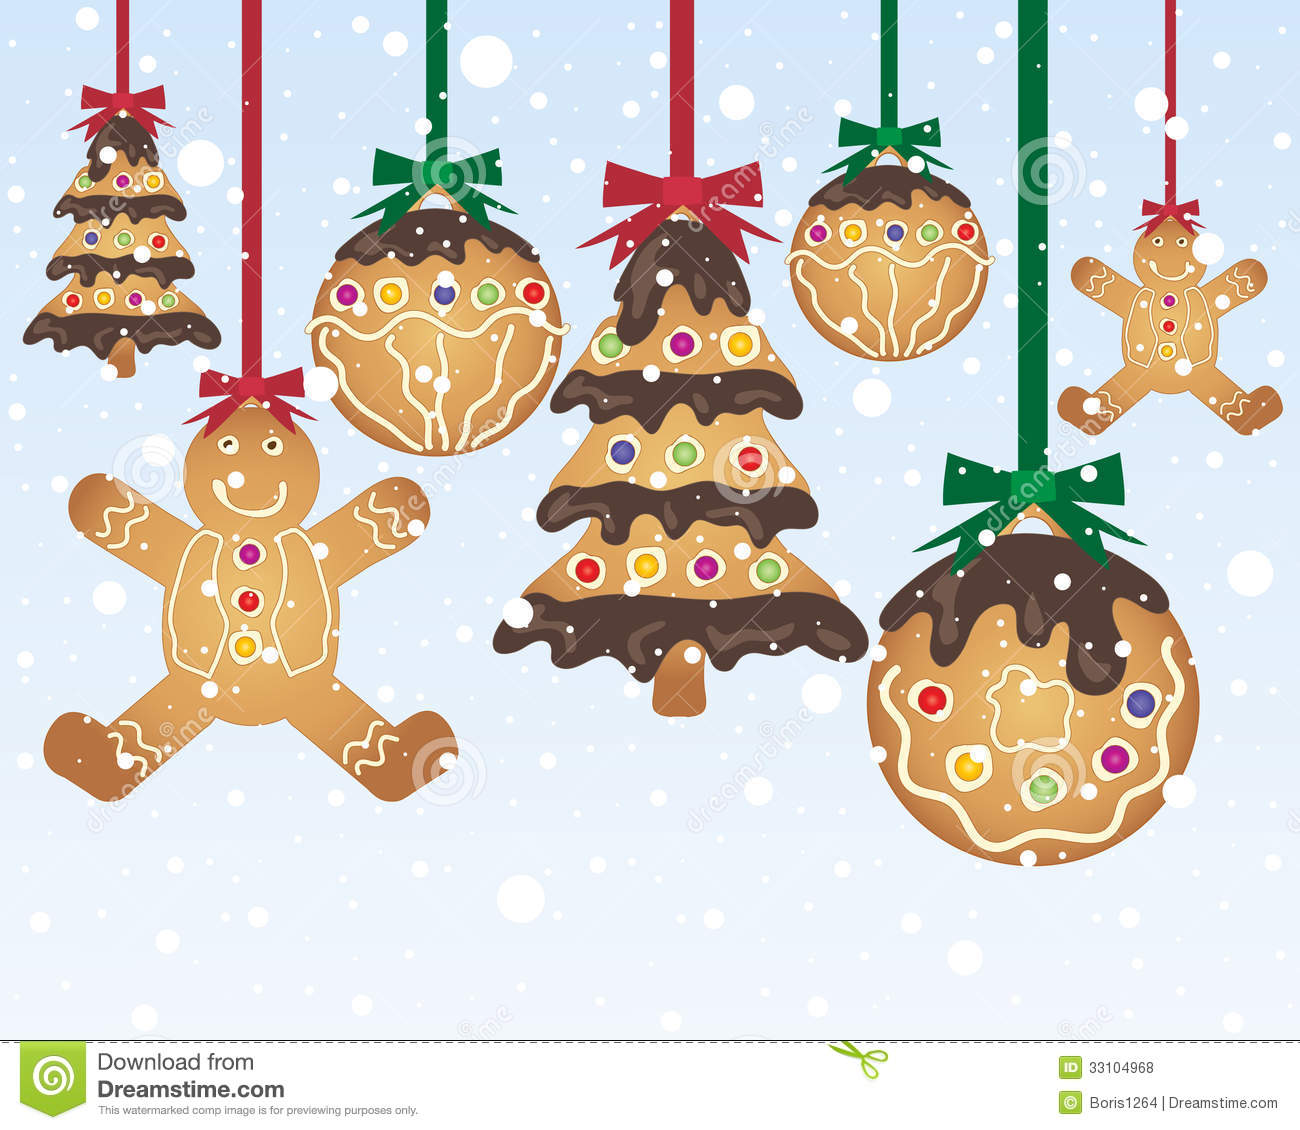 gingerbread baubles - Gingerbread Christmas Decorations